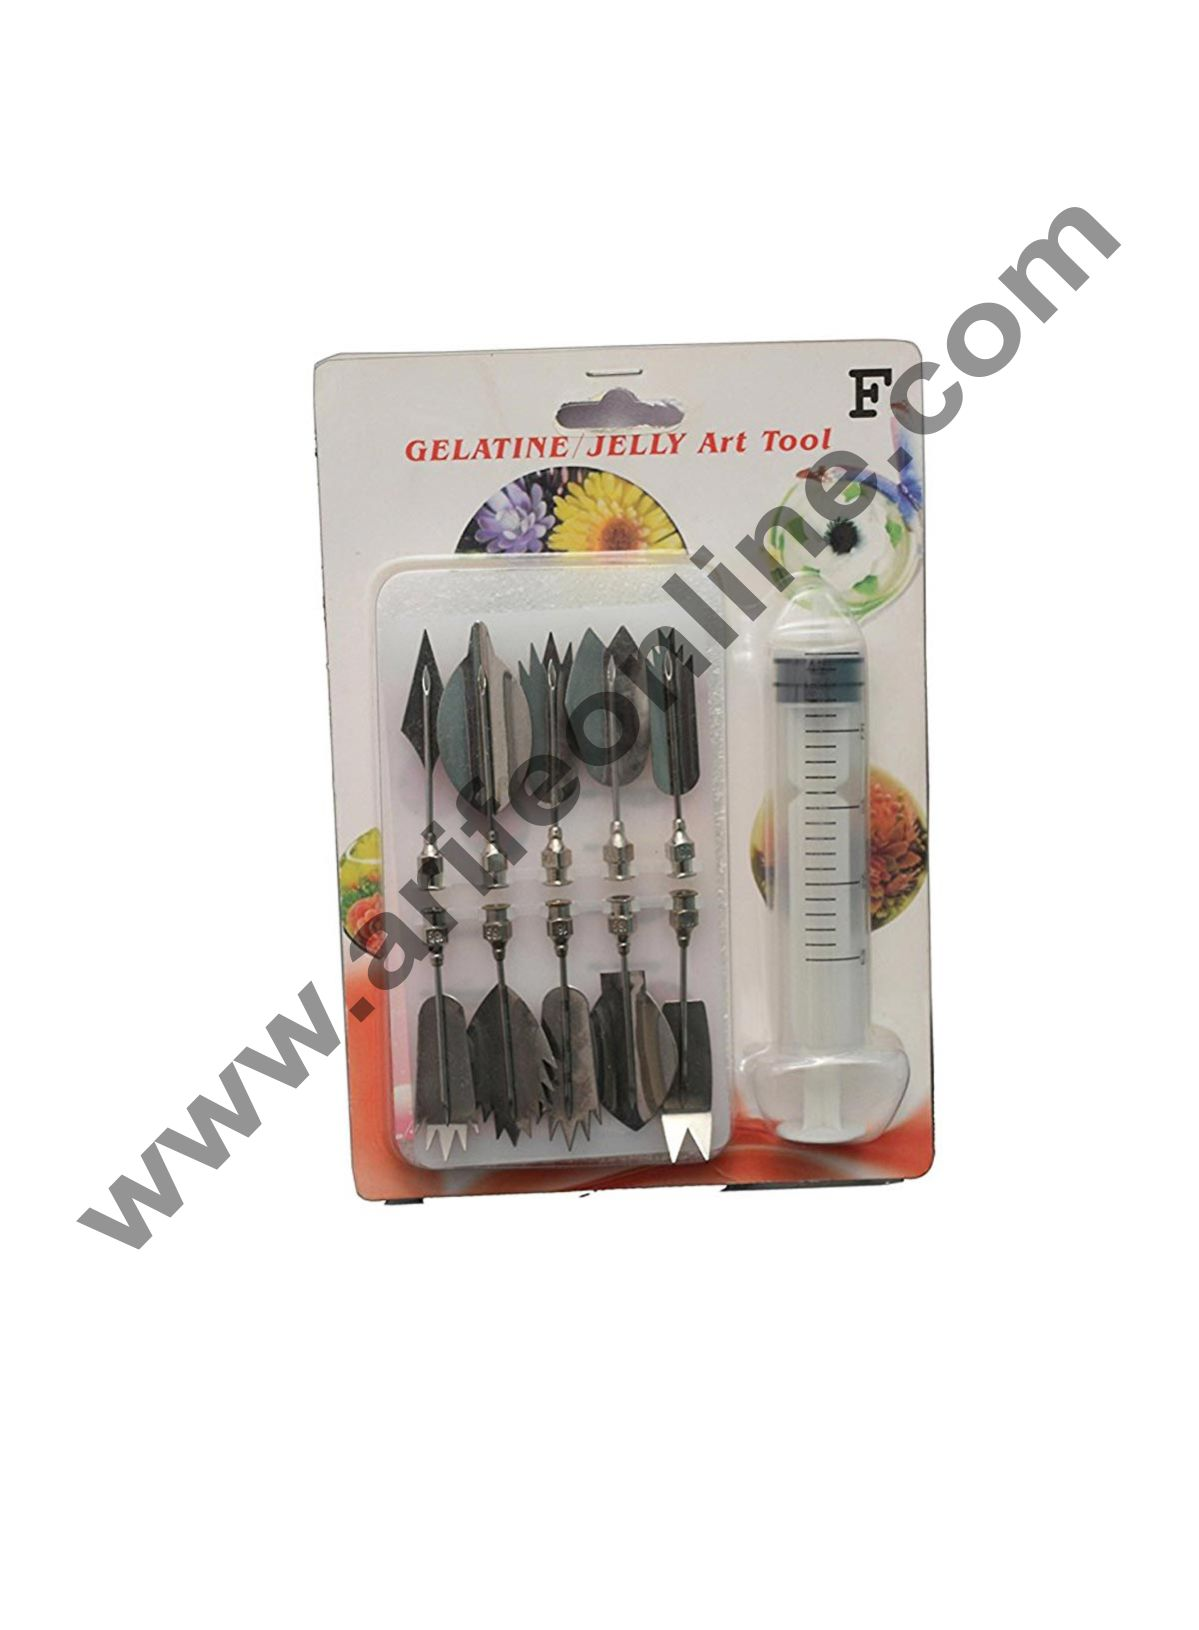 Cake Decor Jelly Gelatin Art Tool 10Pc Set With 1 Syringe ( Jelly Tool Code J )